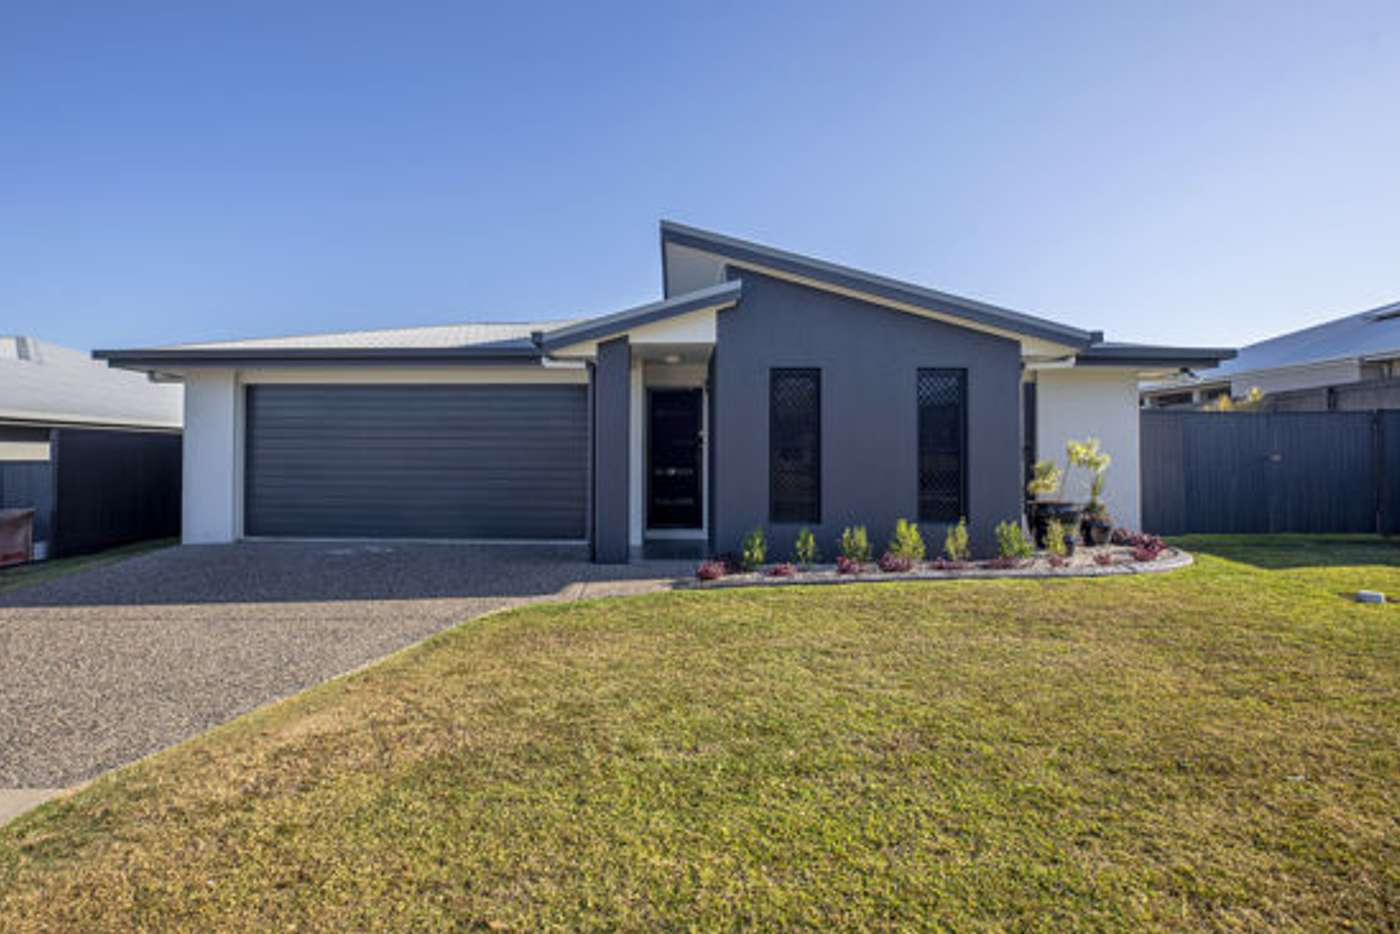 Main view of Homely house listing, 9 Camellen Street, Beaconsfield QLD 4740